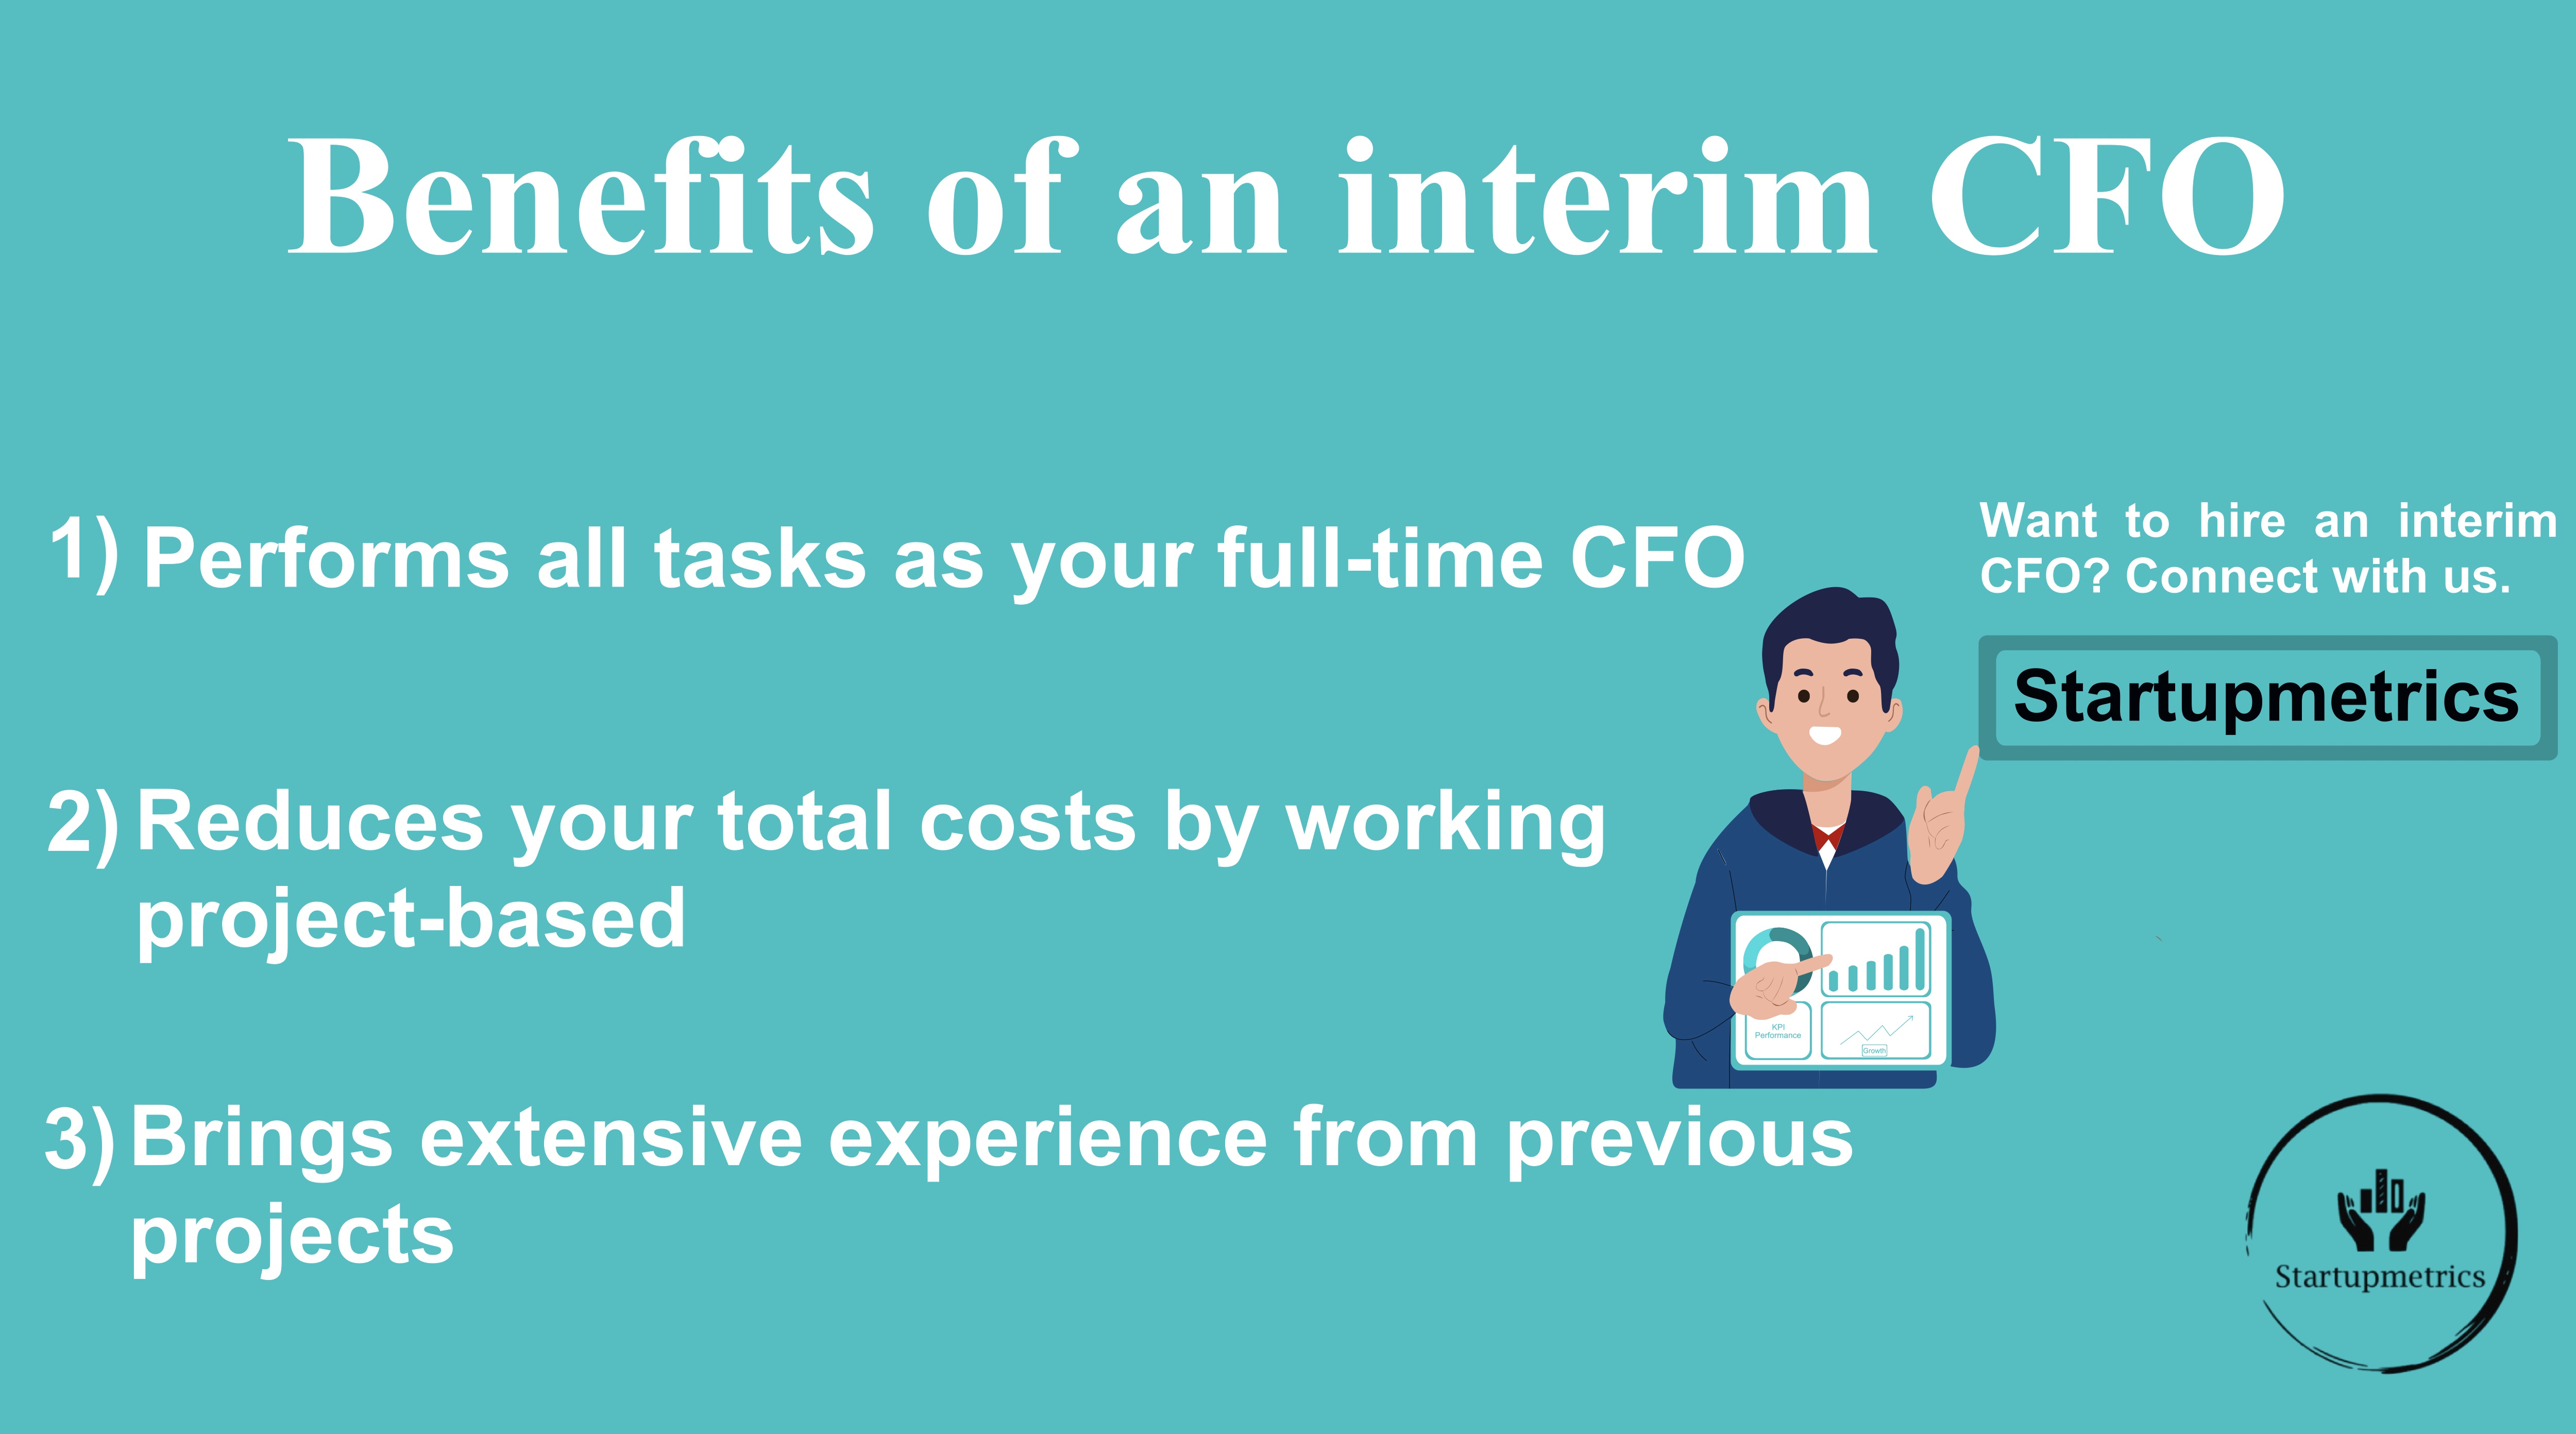 Should your Startup or Spin-off hire an interim CFO over a full-time CFO?